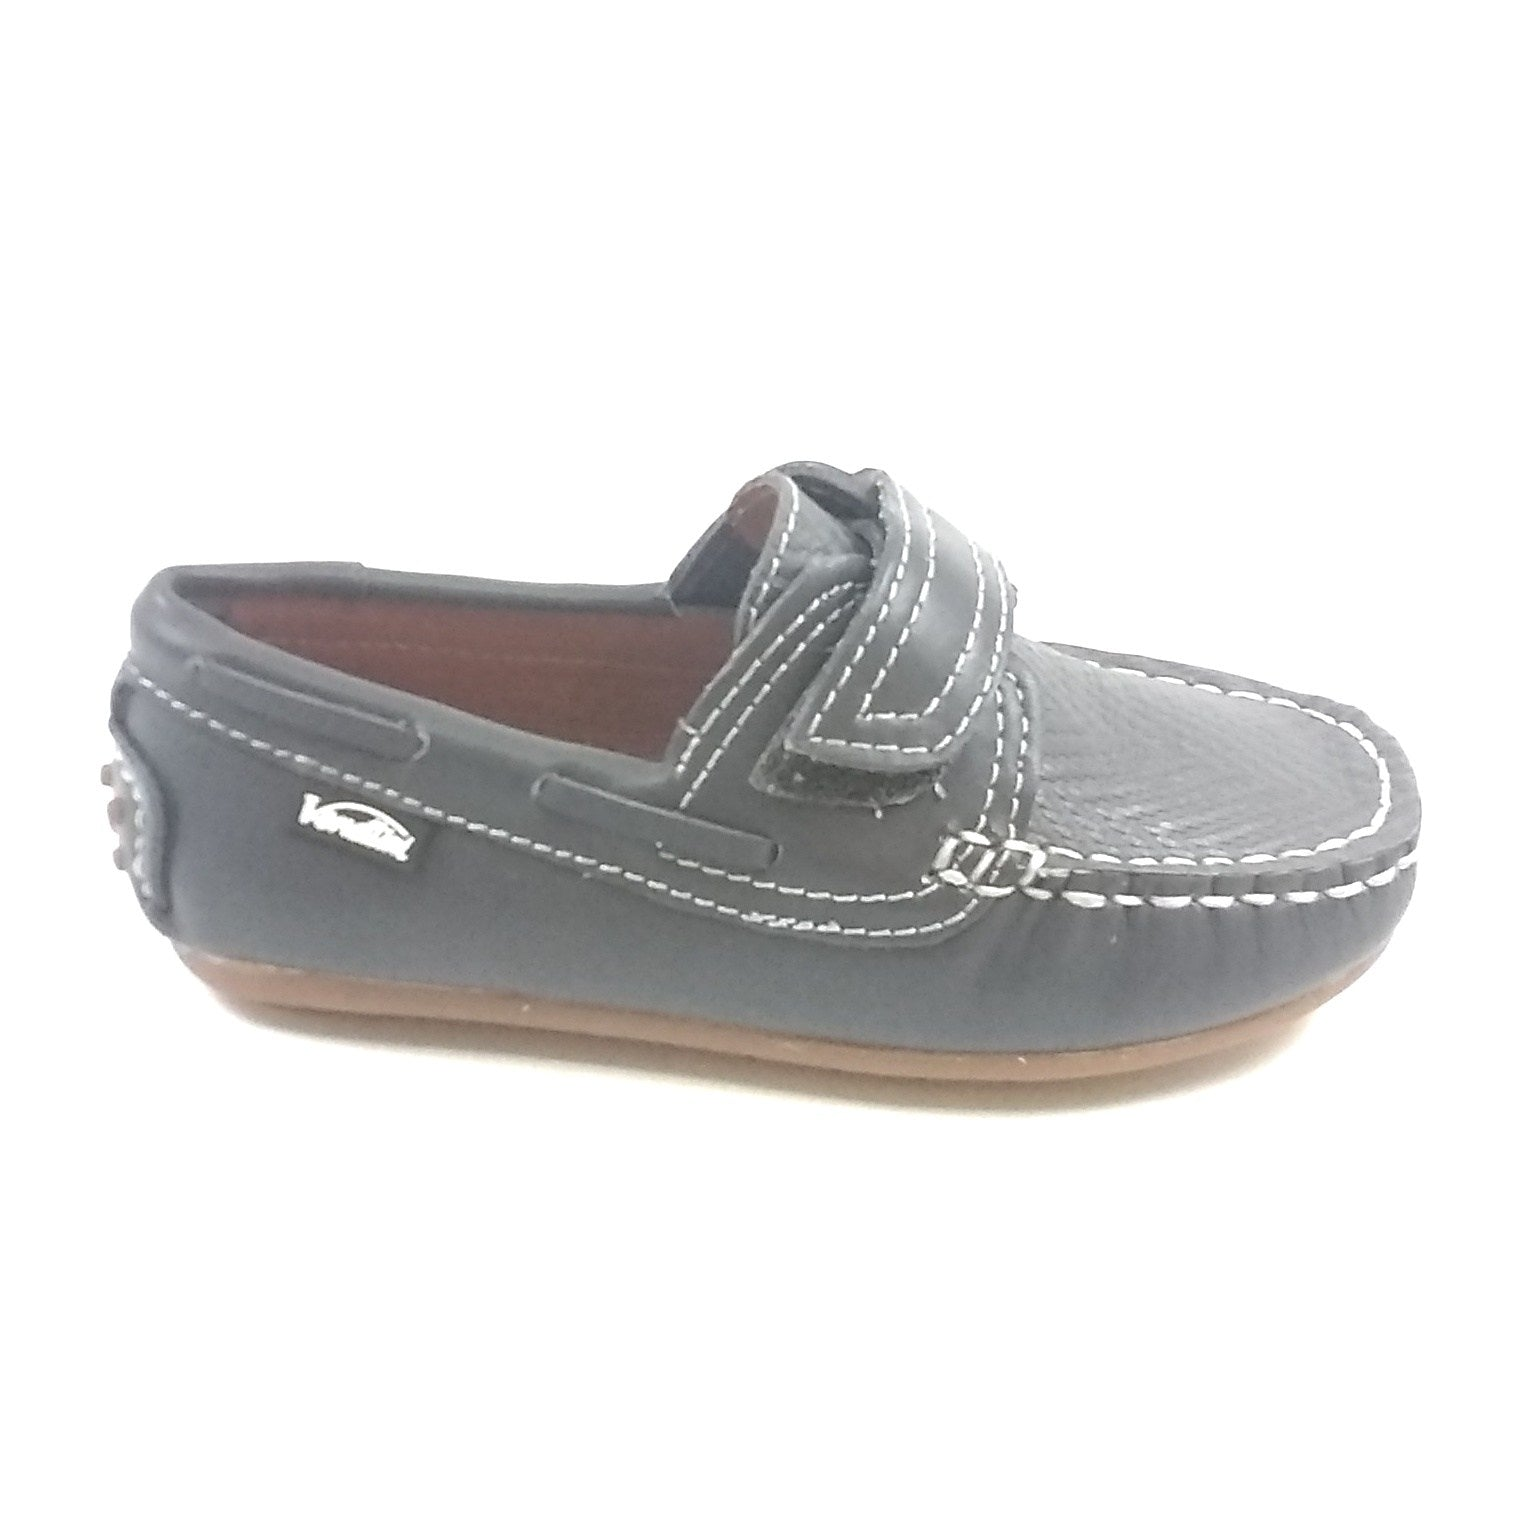 Venettini Gray Velcro Moccasin